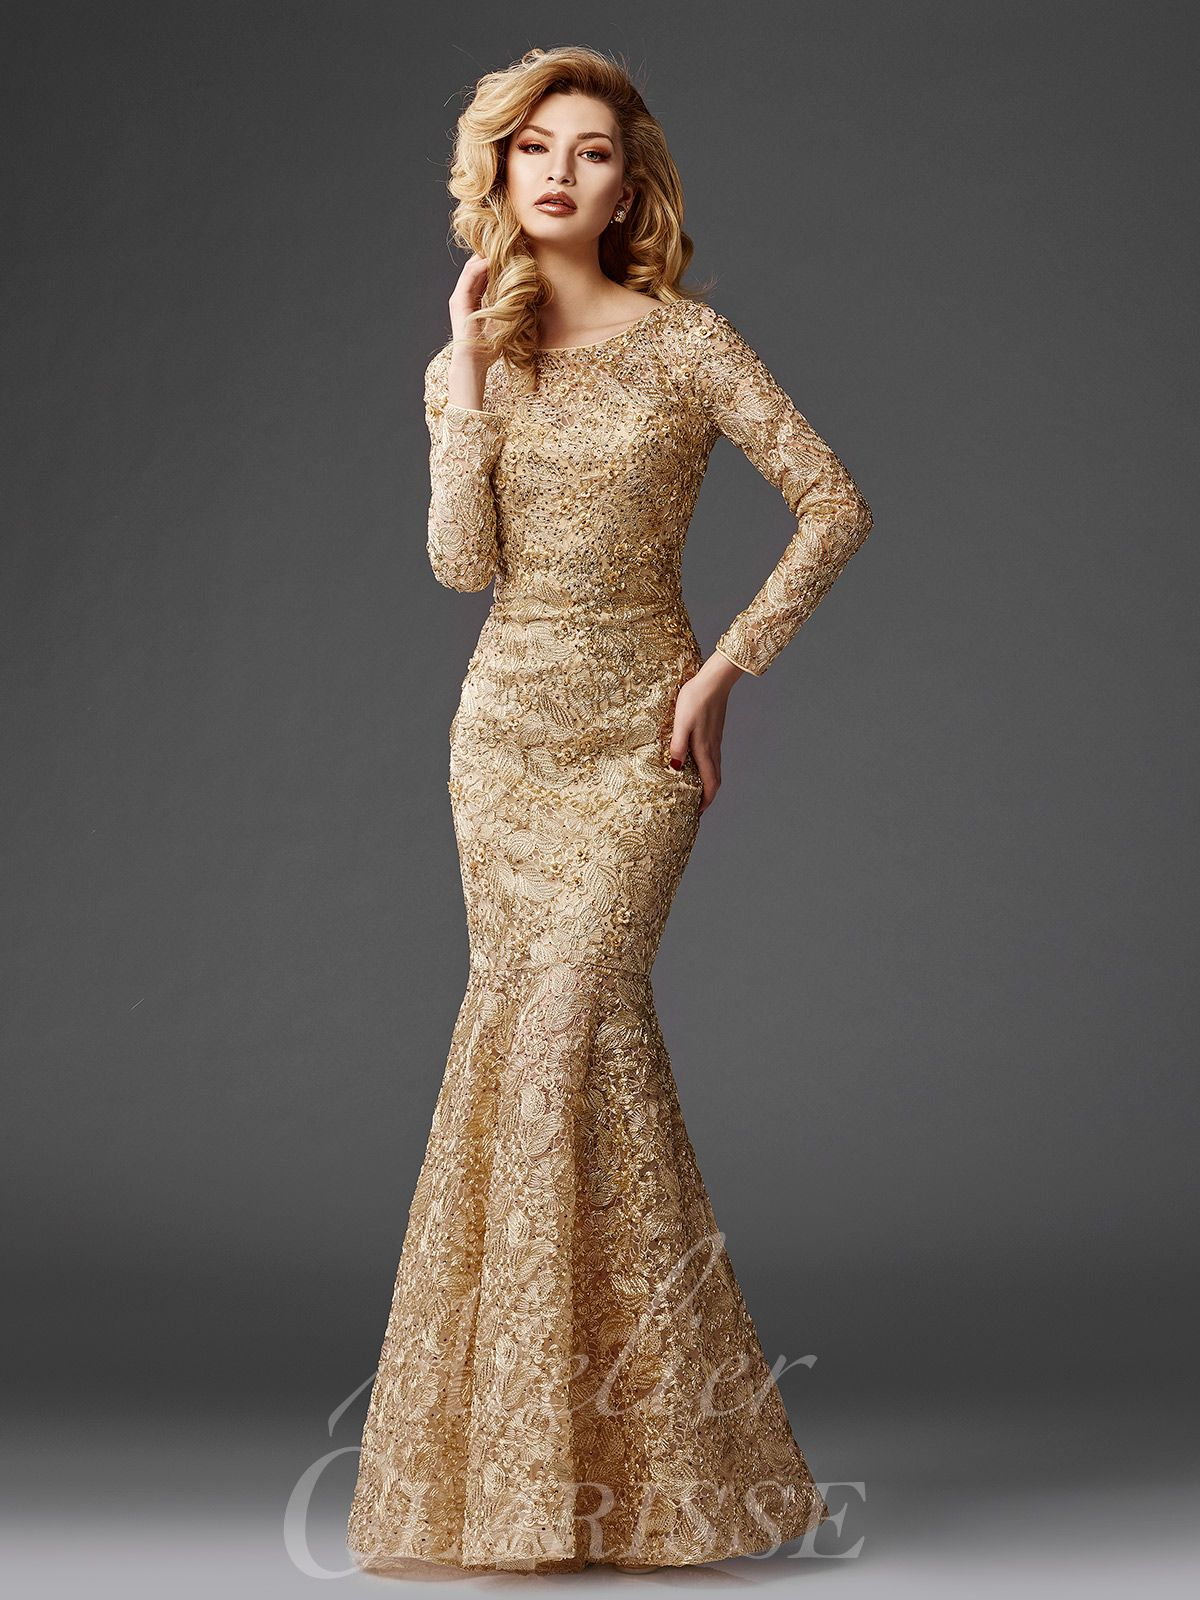 3e01ba86c561 Stunning Gold Lace Mermaid Evening Gown M6426 | Mother of the Bride ...